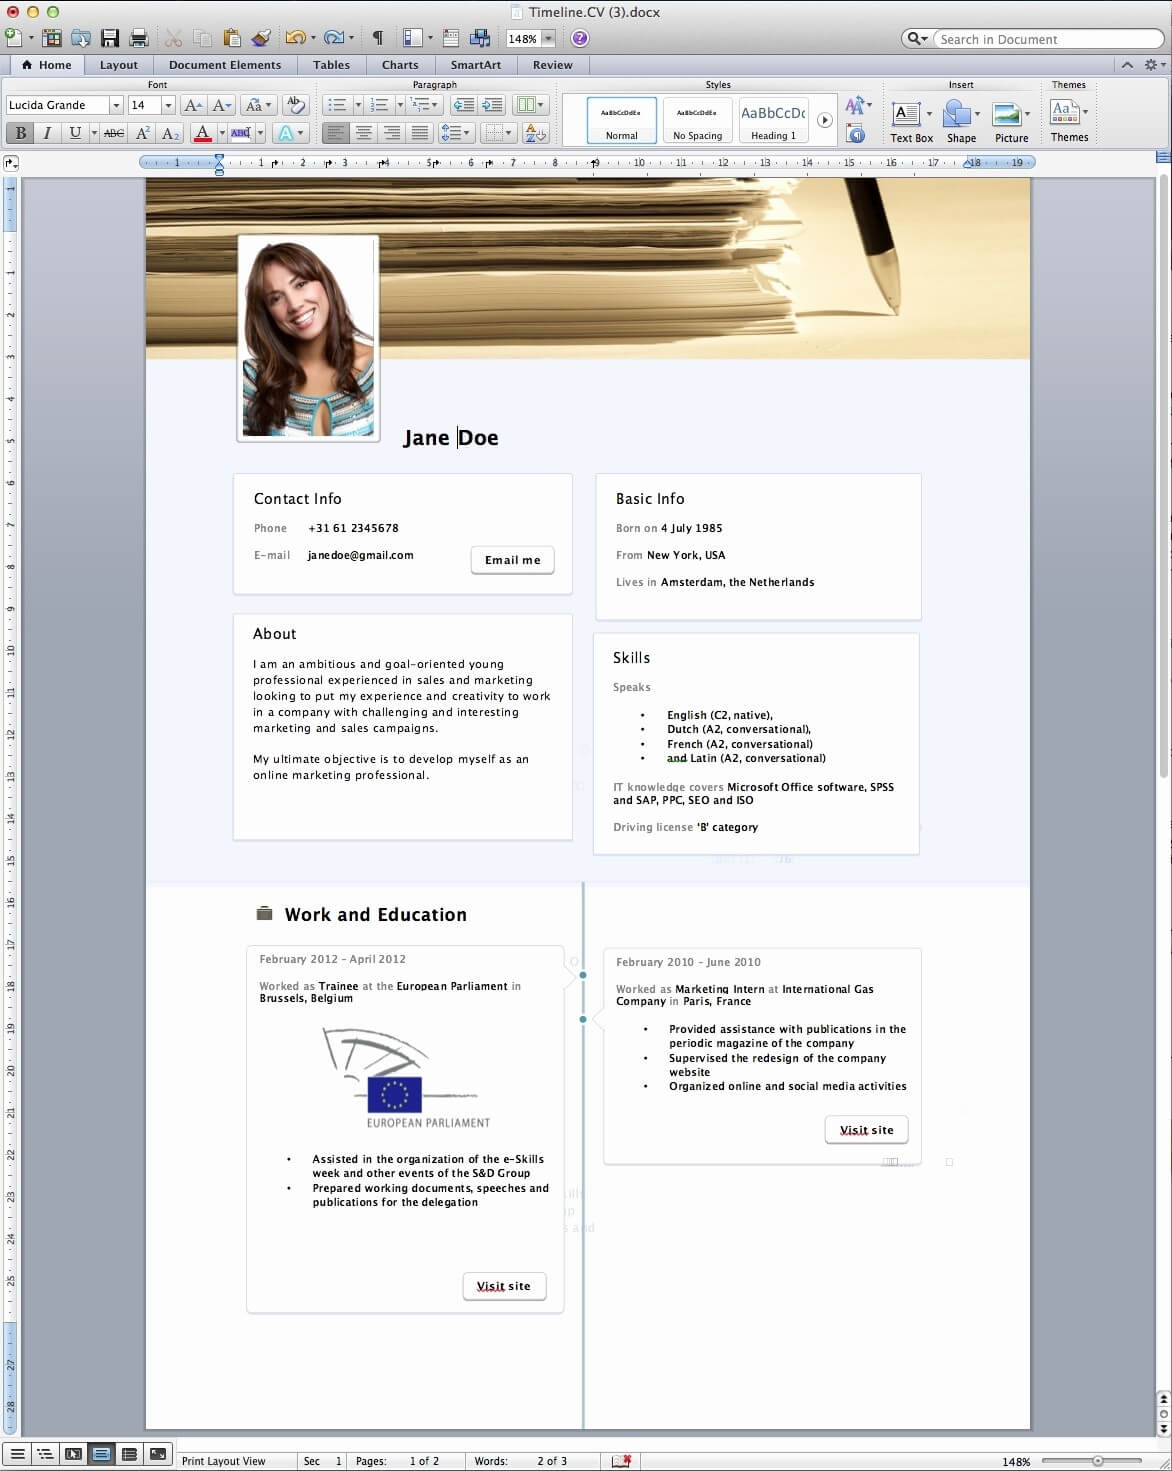 Word 2013 Resume Templates Tjfs Journal – Resume Samples With Resume Templates Word 2013